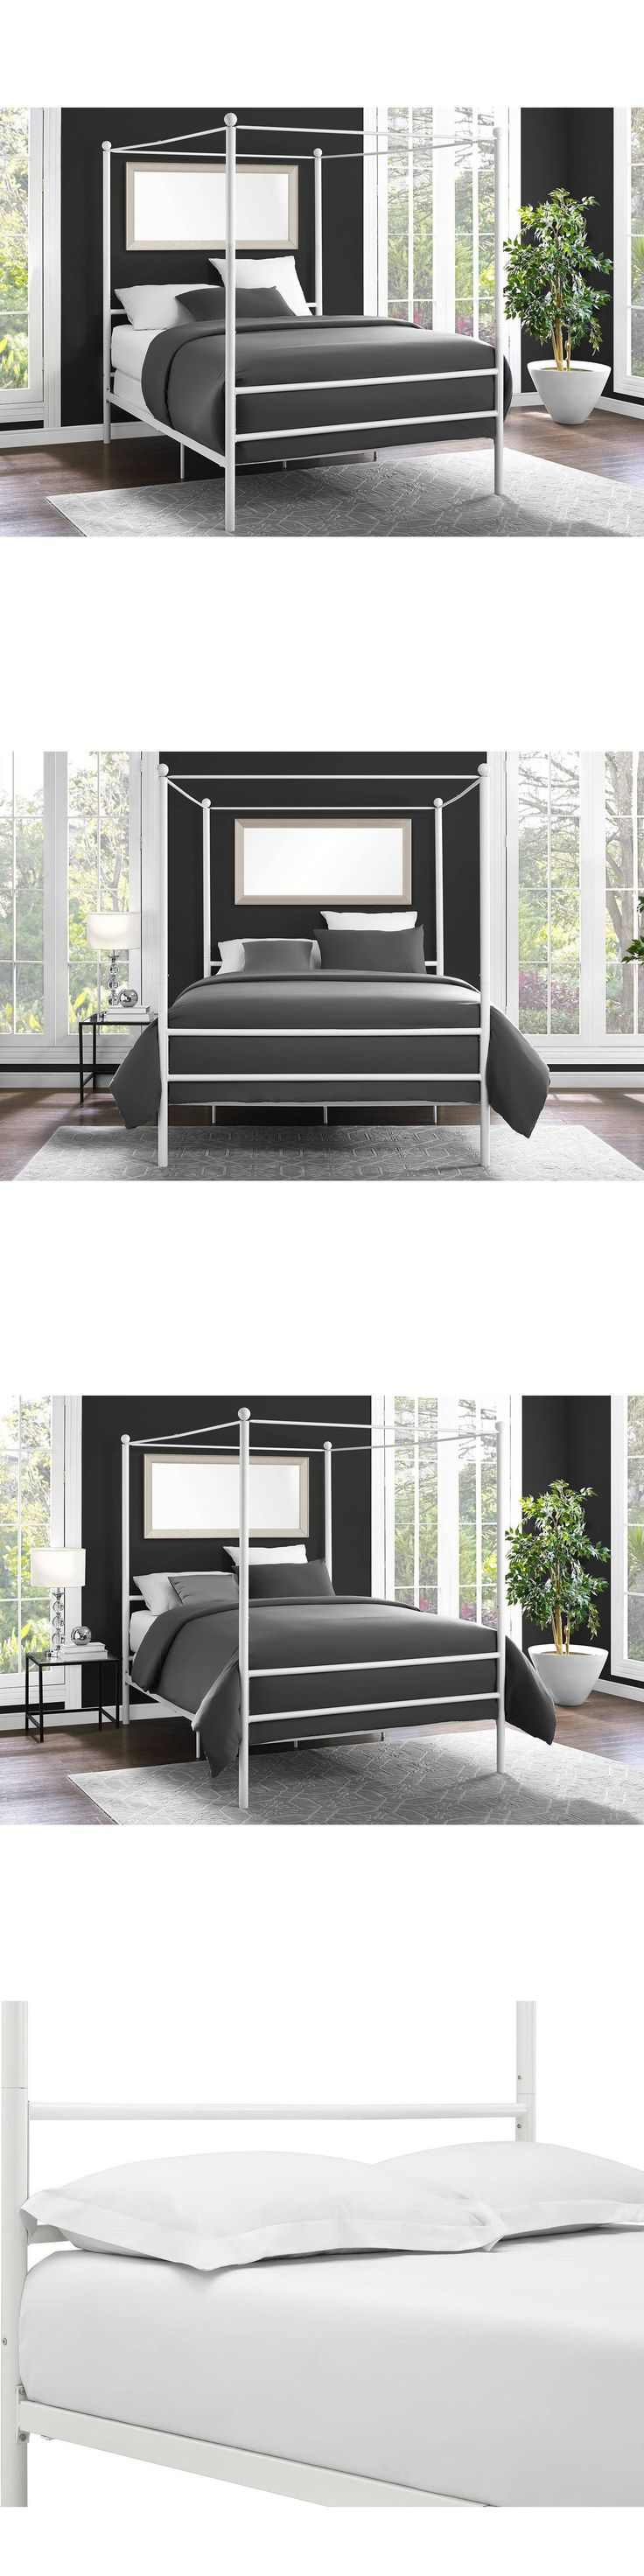 best 20+ metal canopy ideas on pinterest | metal canopy bed, oly